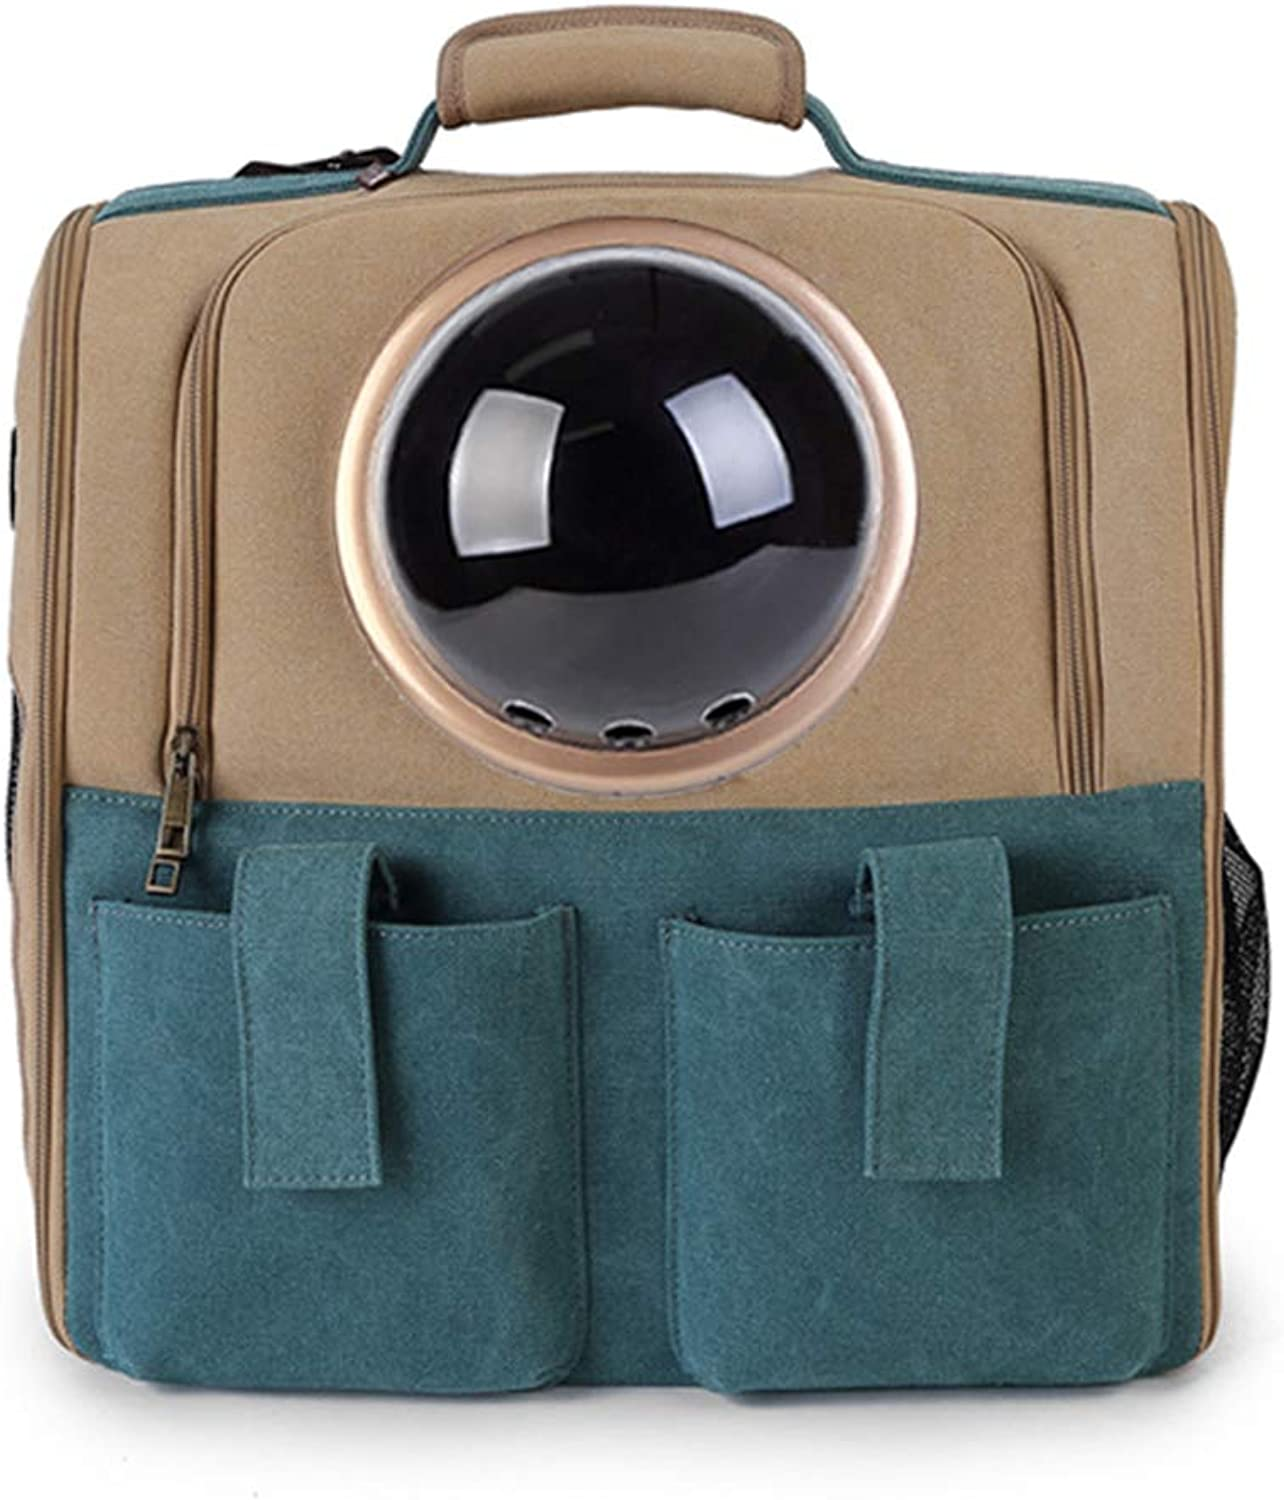 Pet Carrier Backpack with Space Capsules Breathable for Pets, Cats, Dogs, Puppies, Travel, Dogs, Cats, Backpack with Bubbles, Design of Space Capsules Approved by Airlines